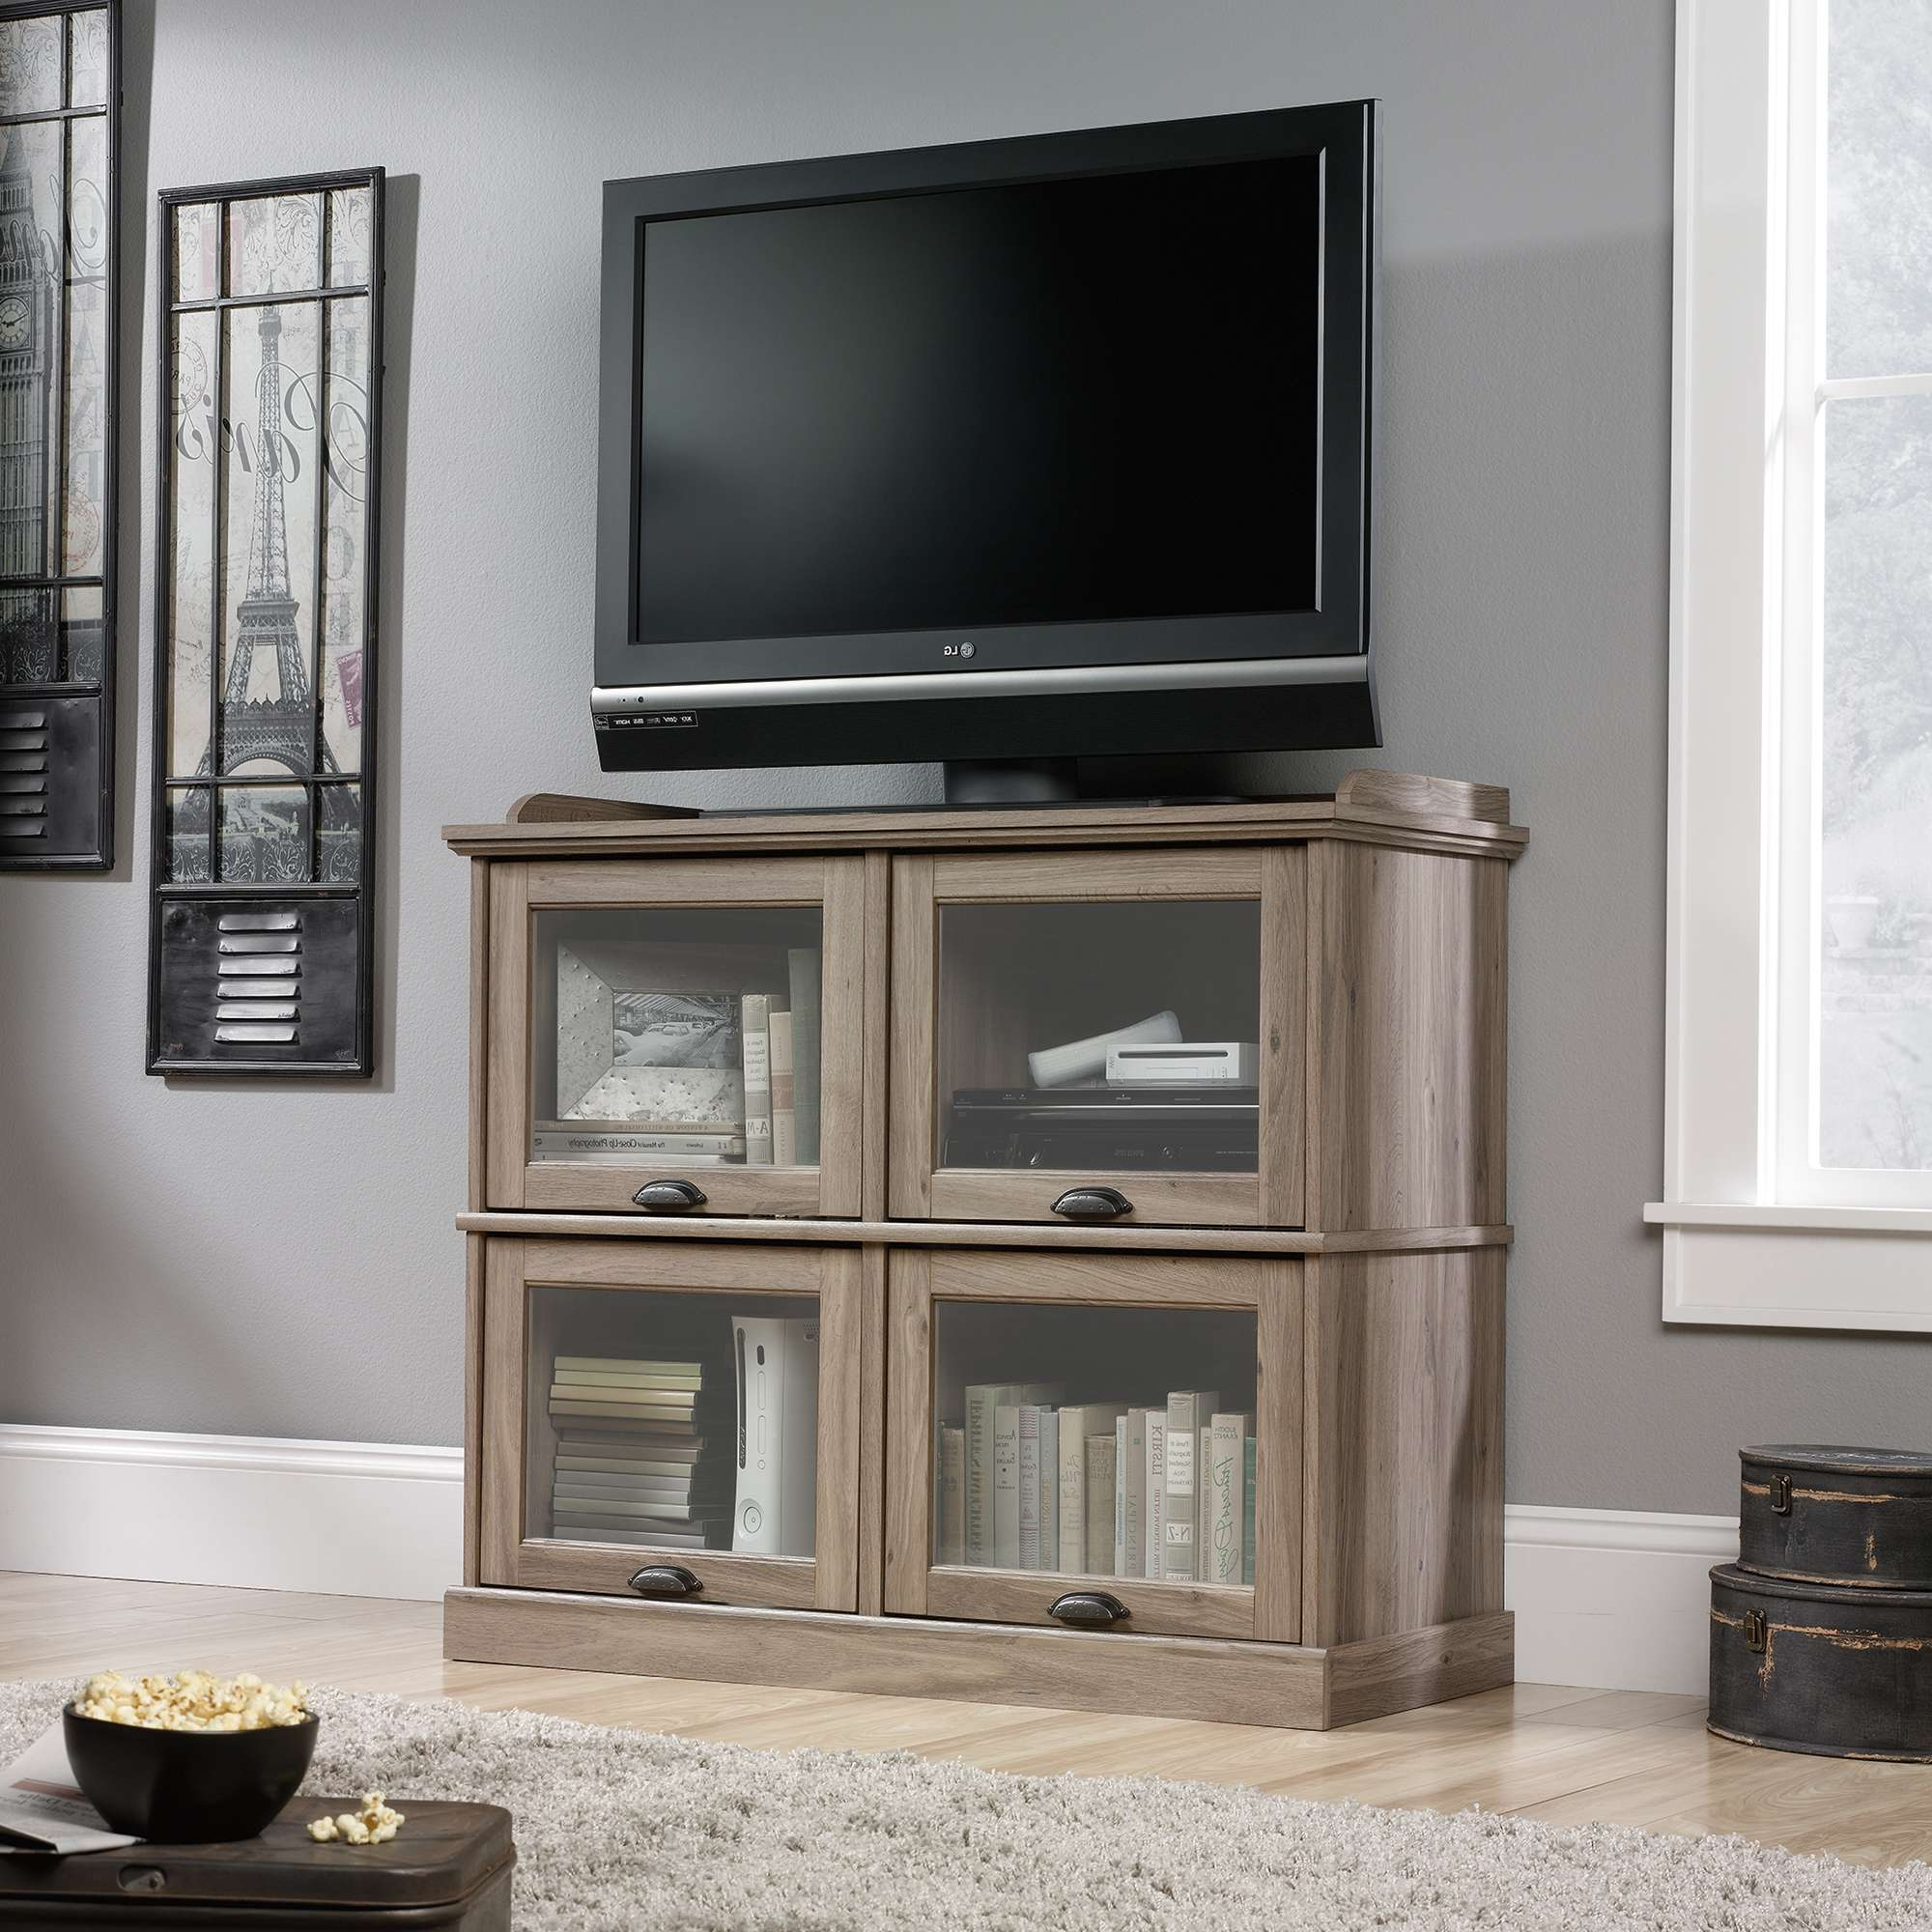 Barrister Lane | Highboy Tv Stand | 414720 | Sauder Within Lane Tv Stands (View 2 of 15)